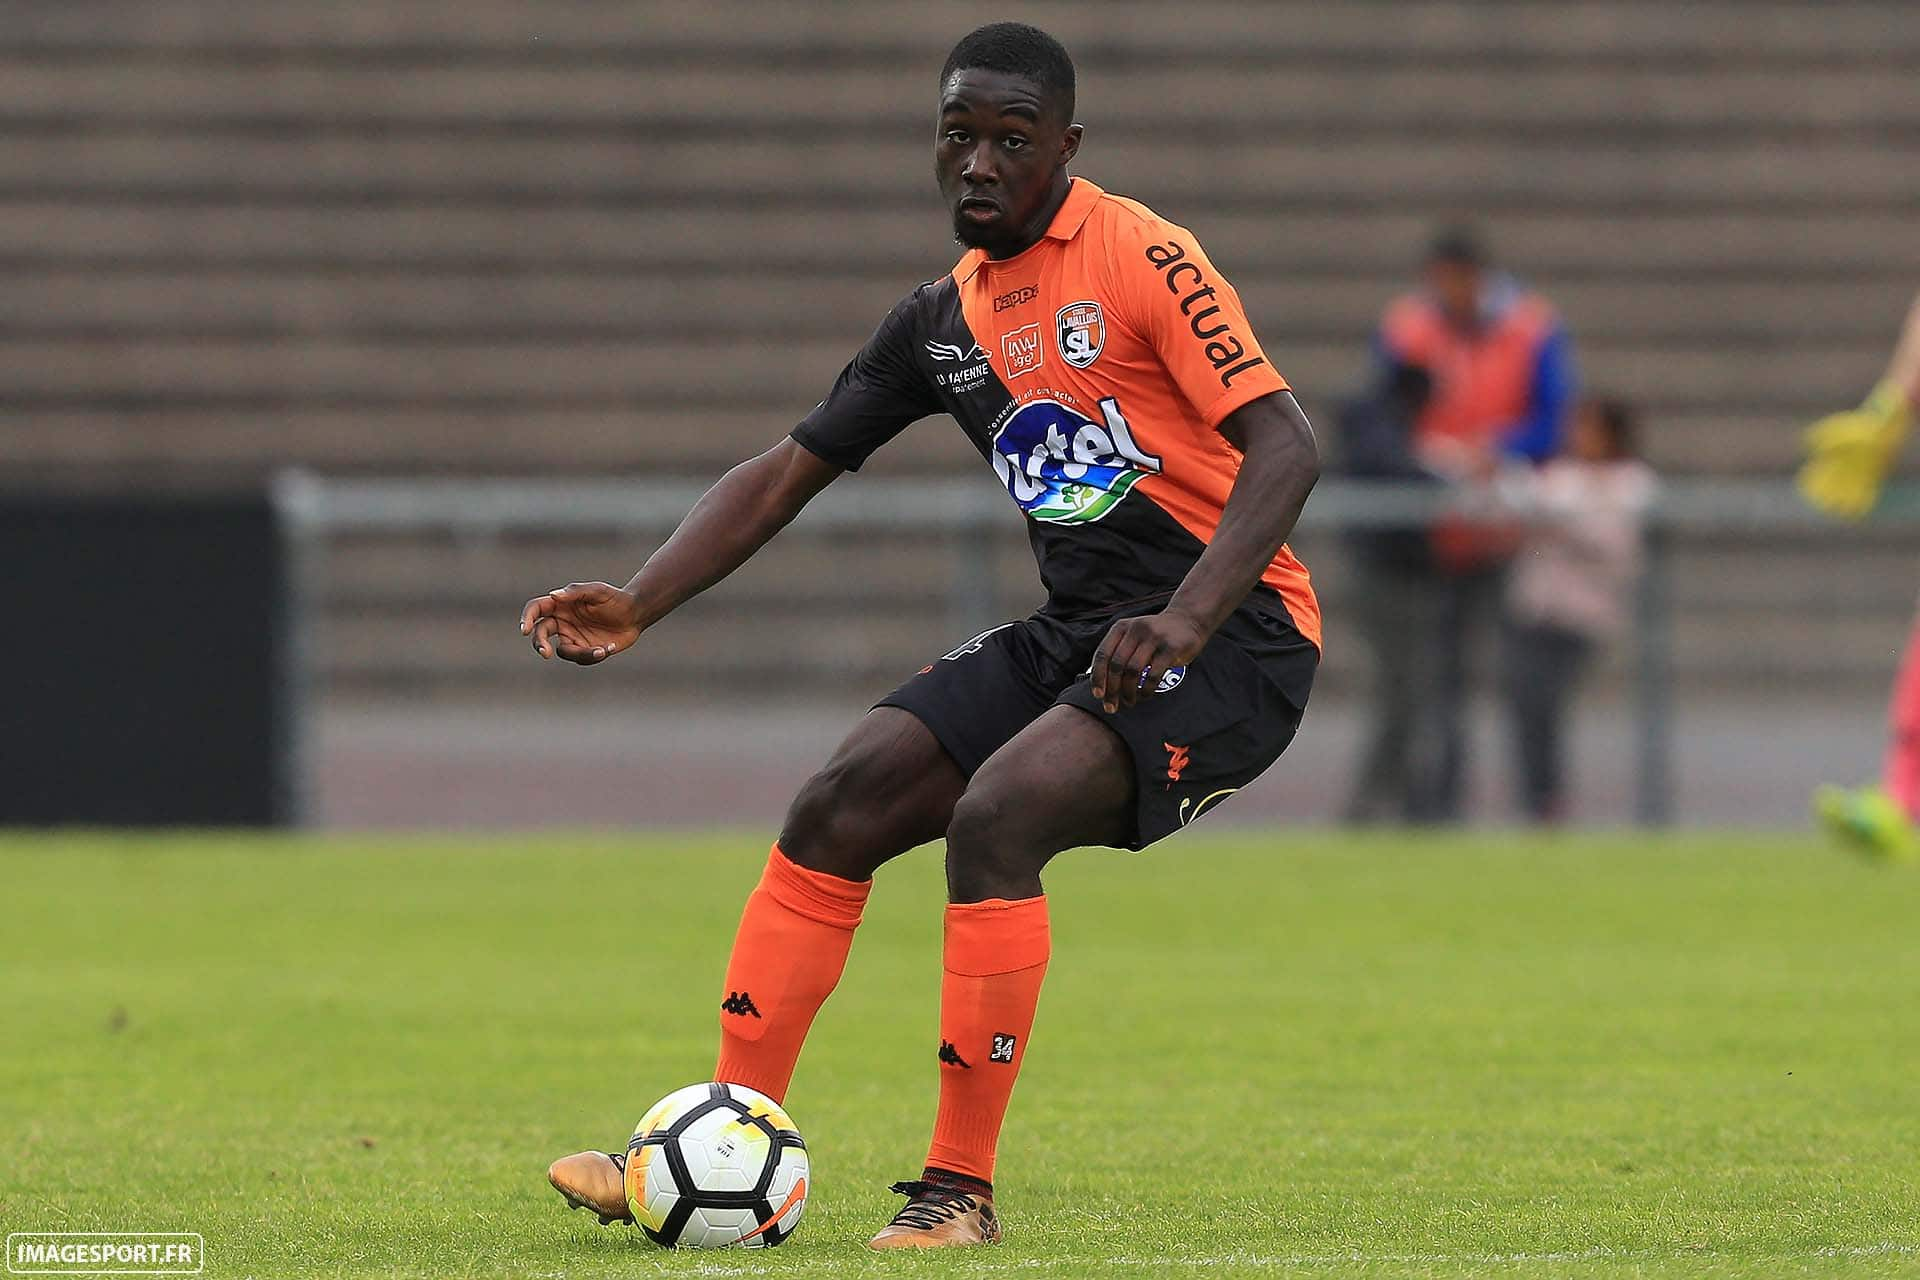 Baba CISSE (Stade Lavallois)